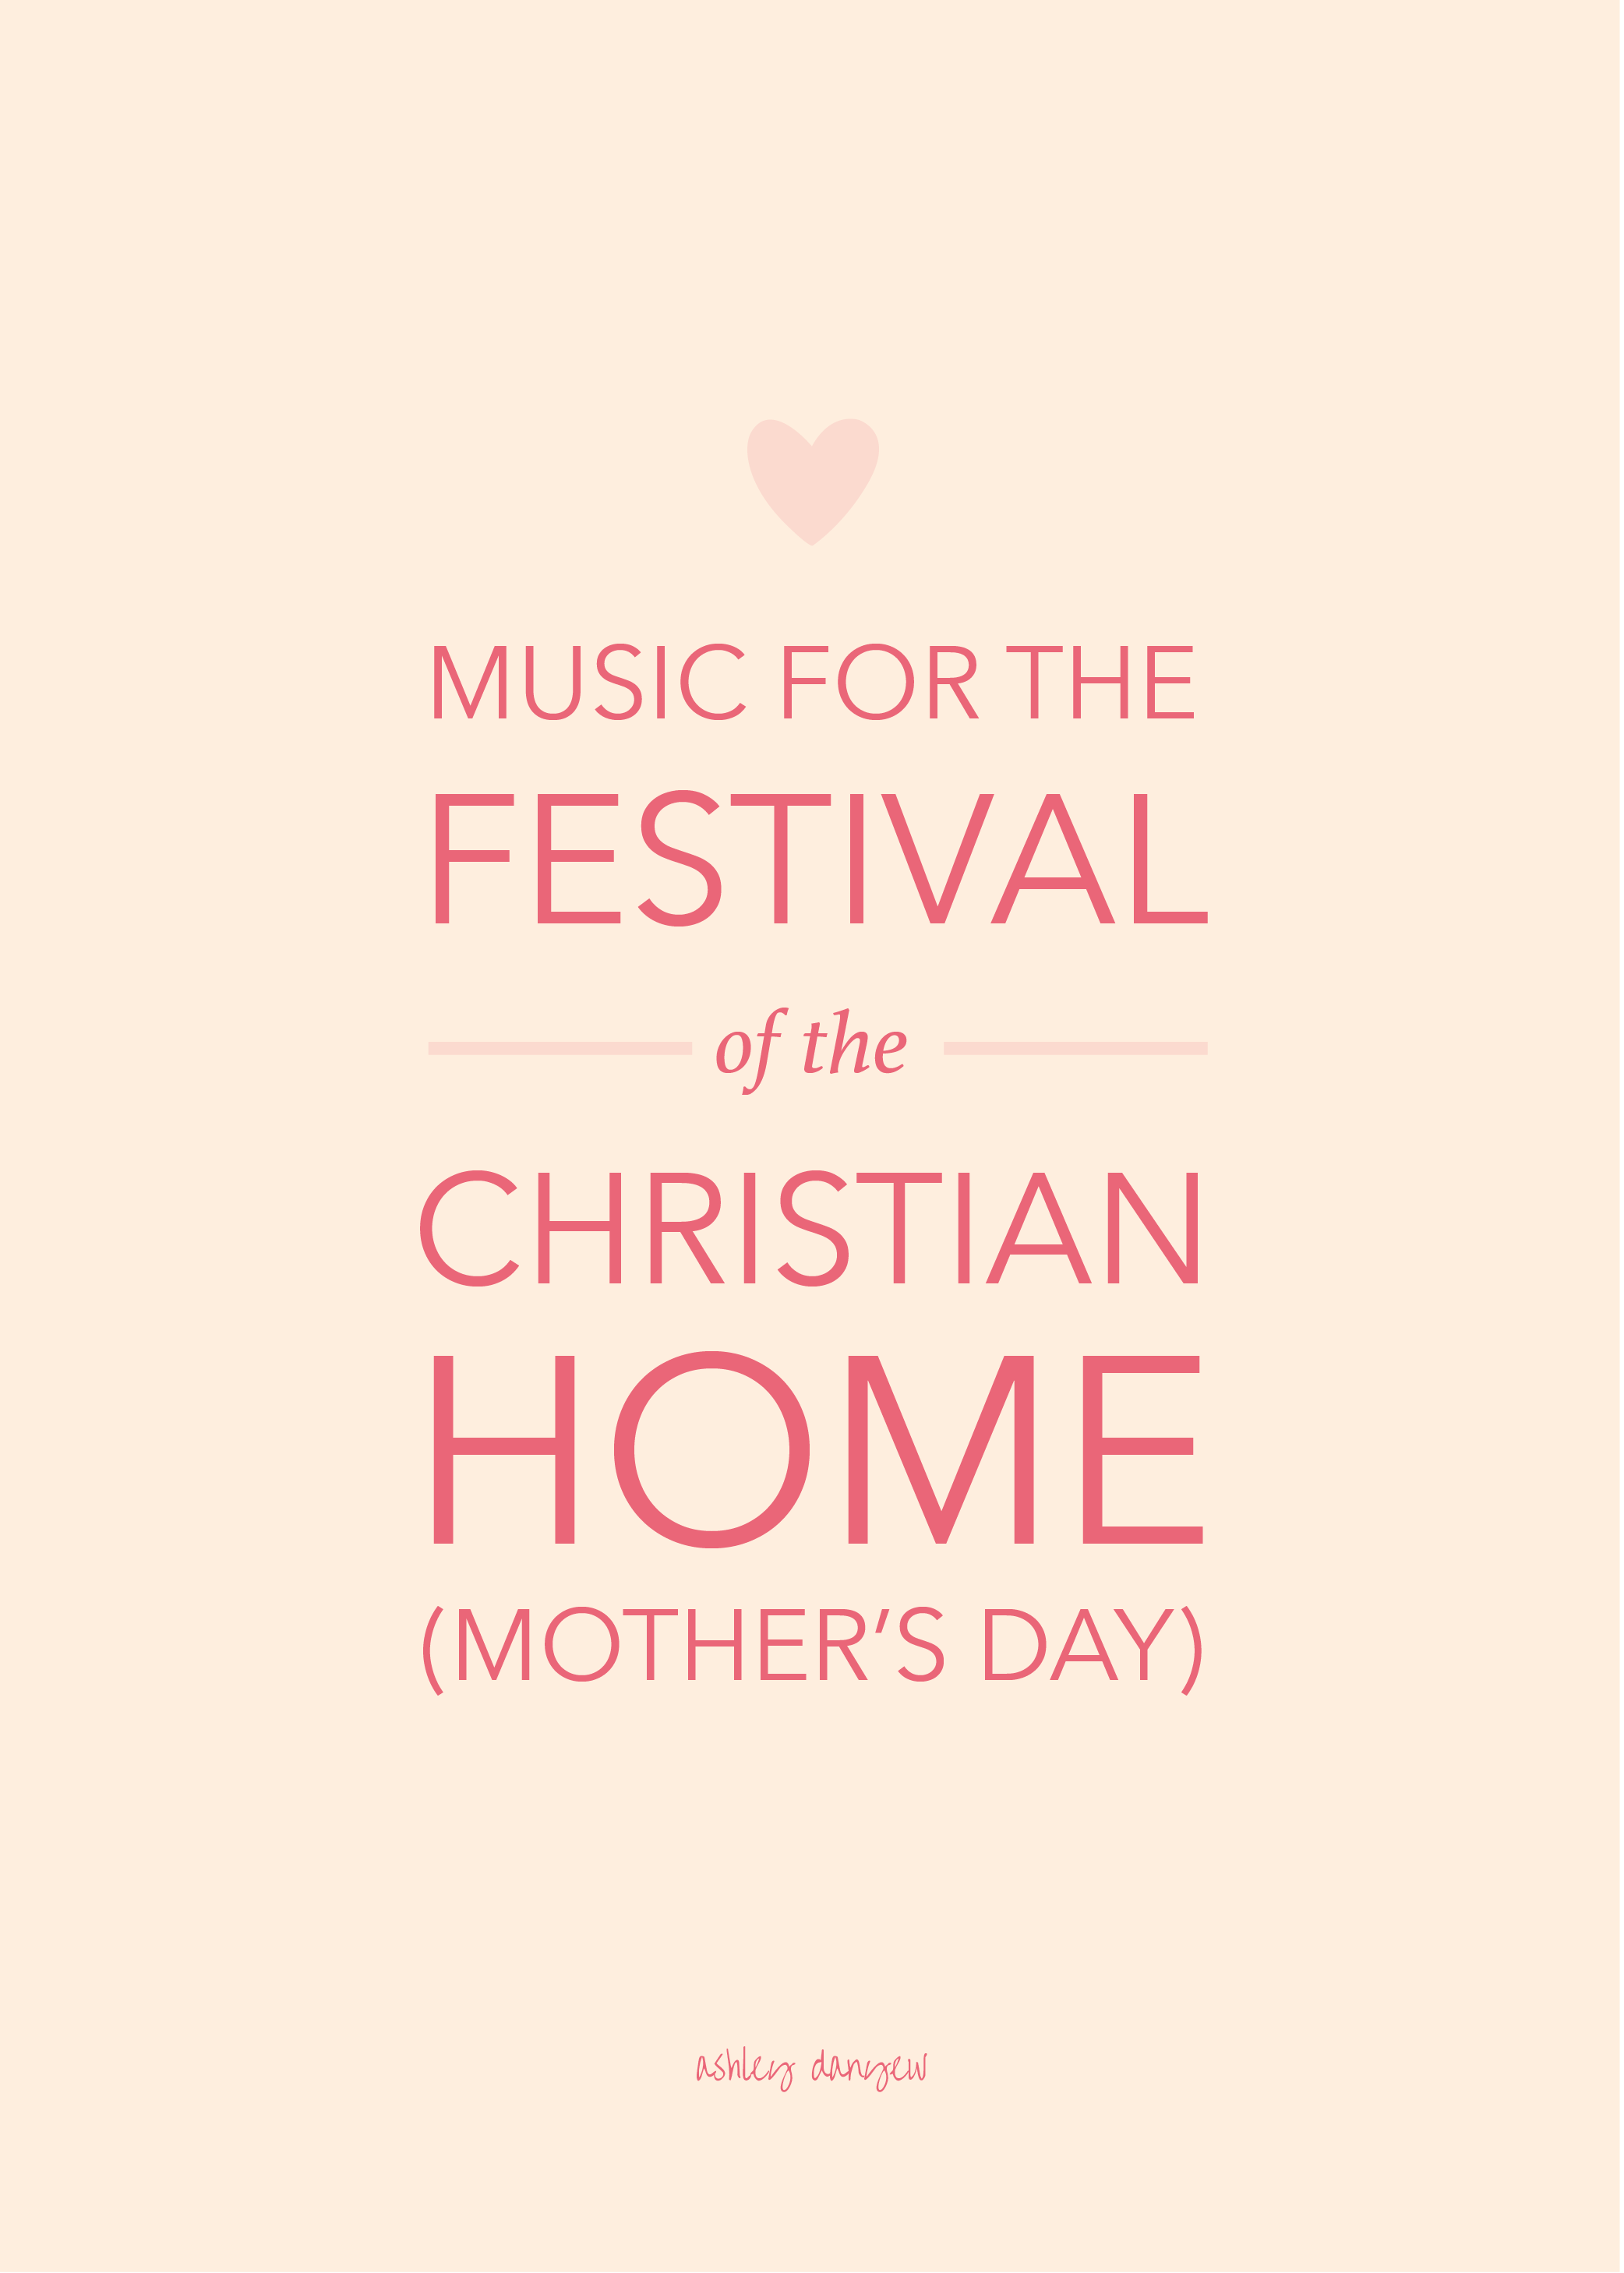 Music for the Festival of the Christian Home (Mother's Day)